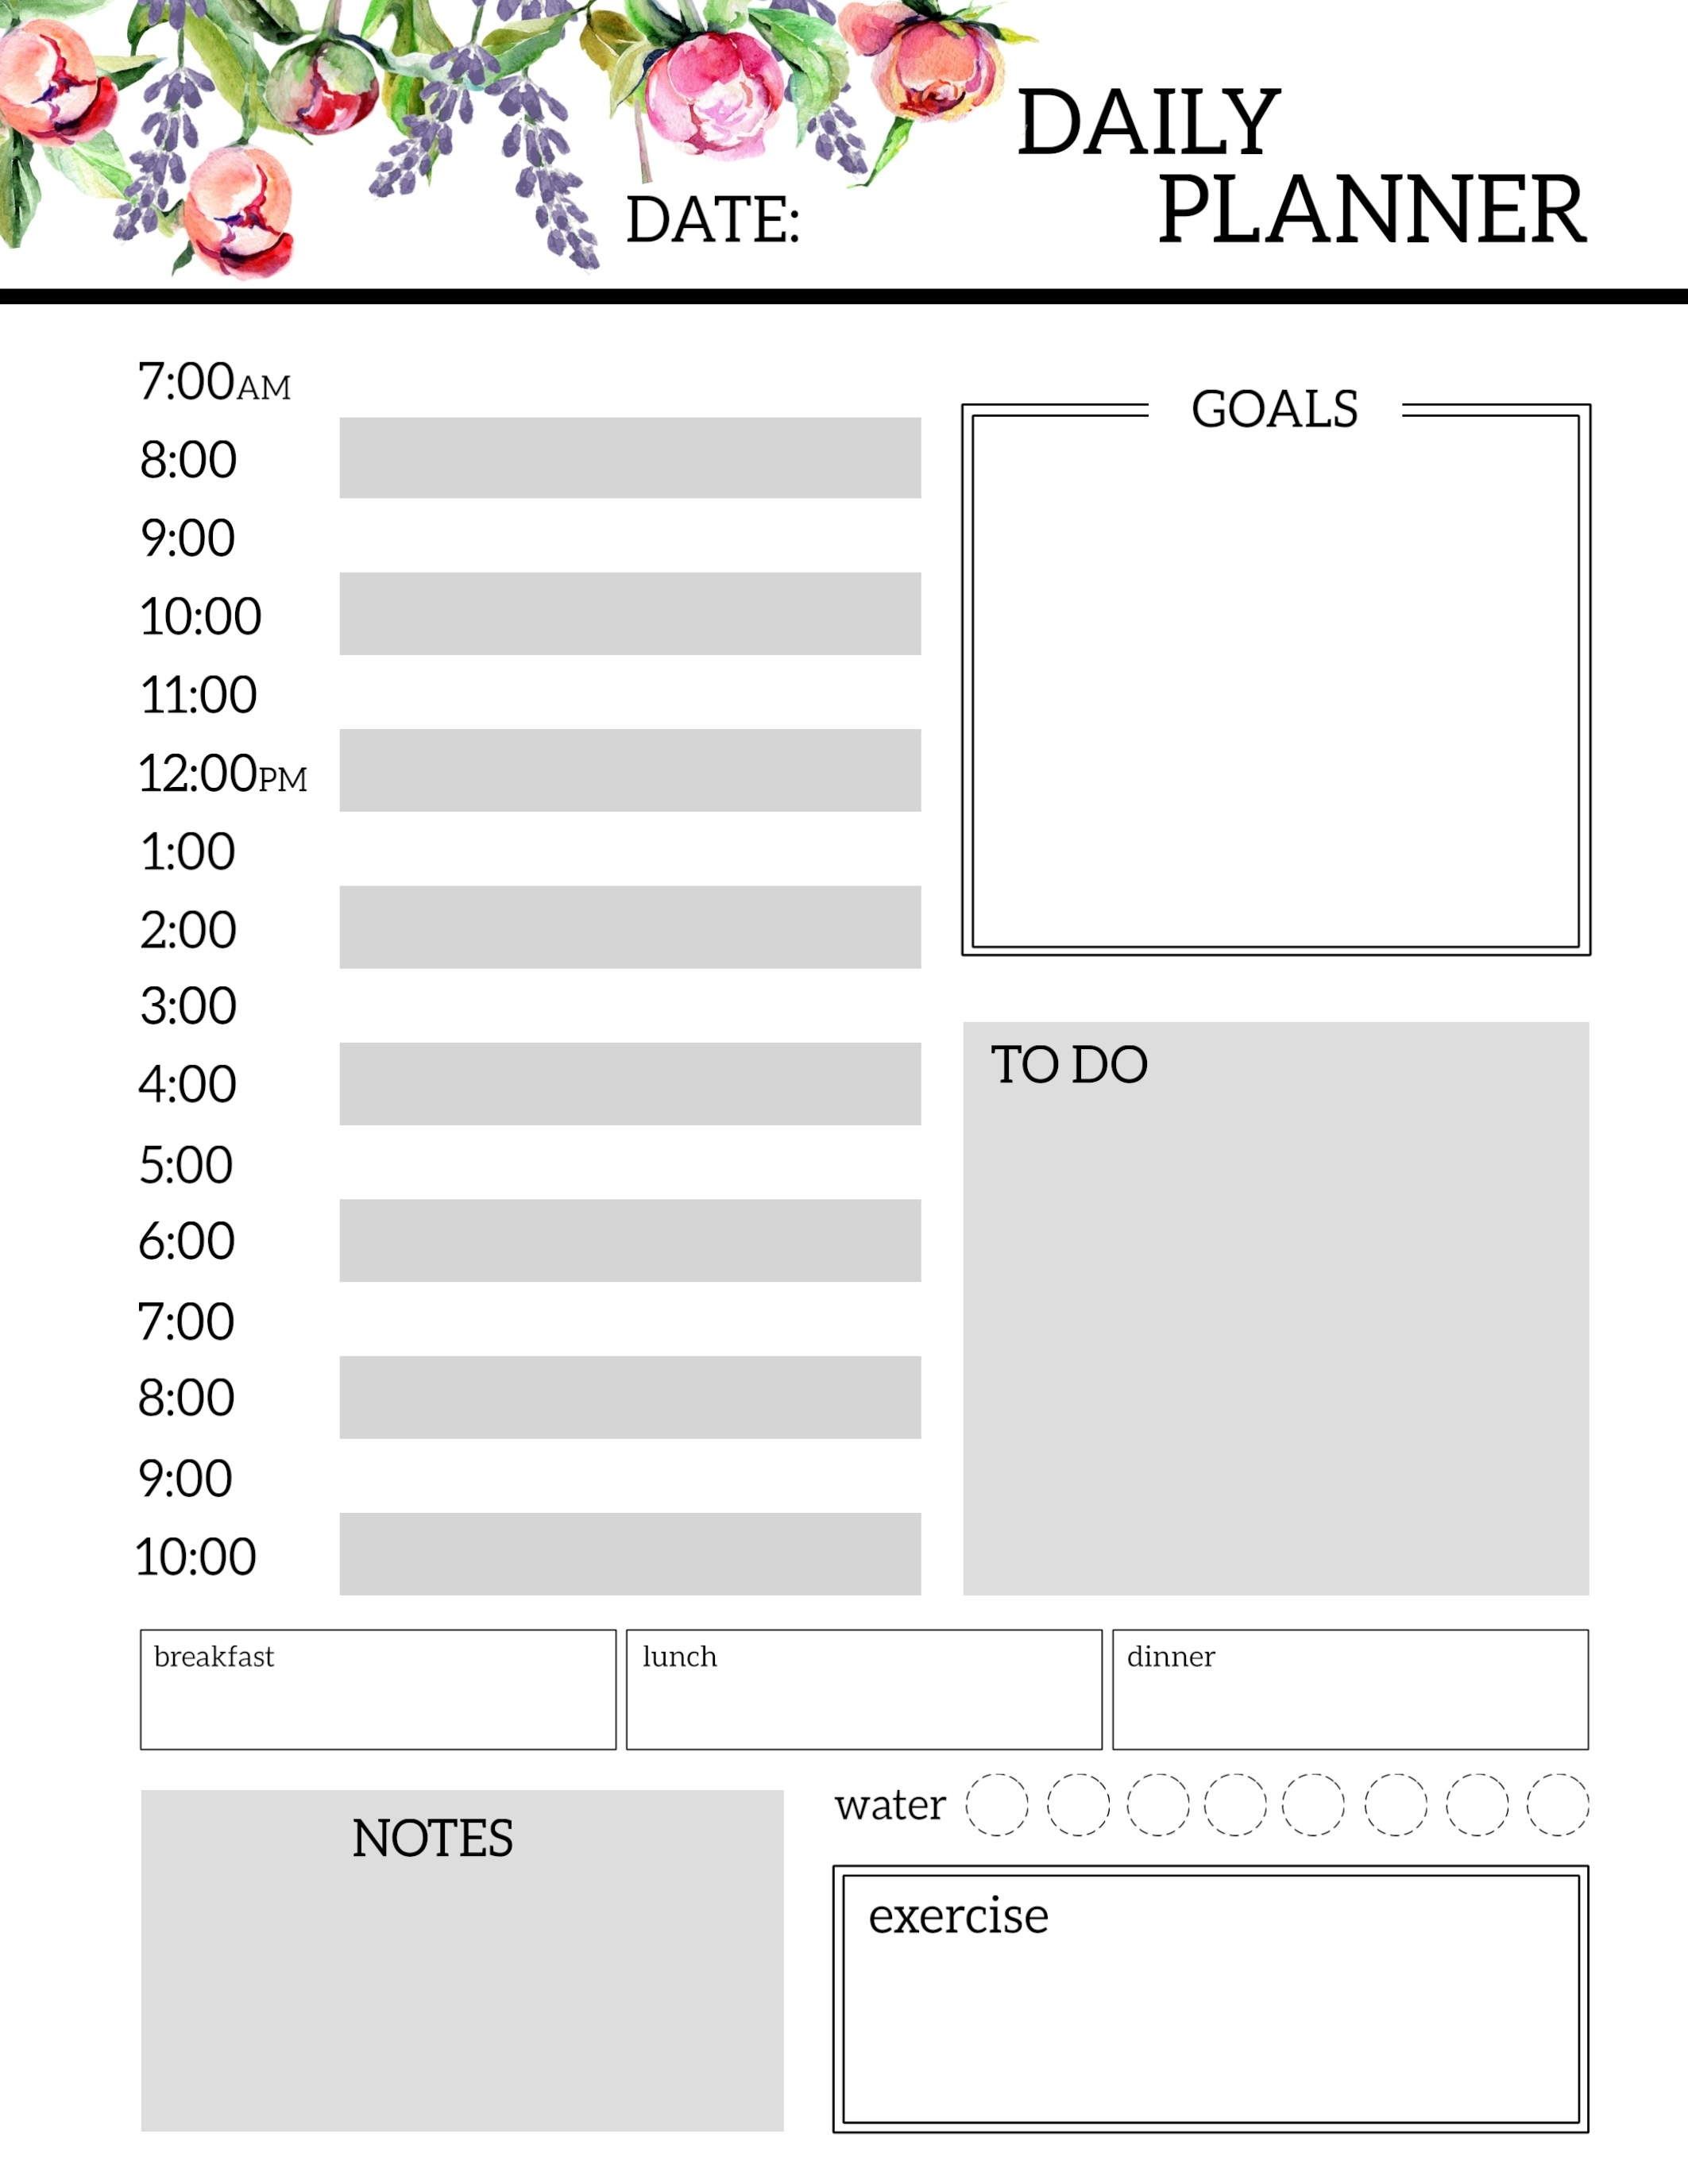 Floral Free Printable Daily Planner Template Sheets - Paper Trail Design with Daily Planner Template Printable Free